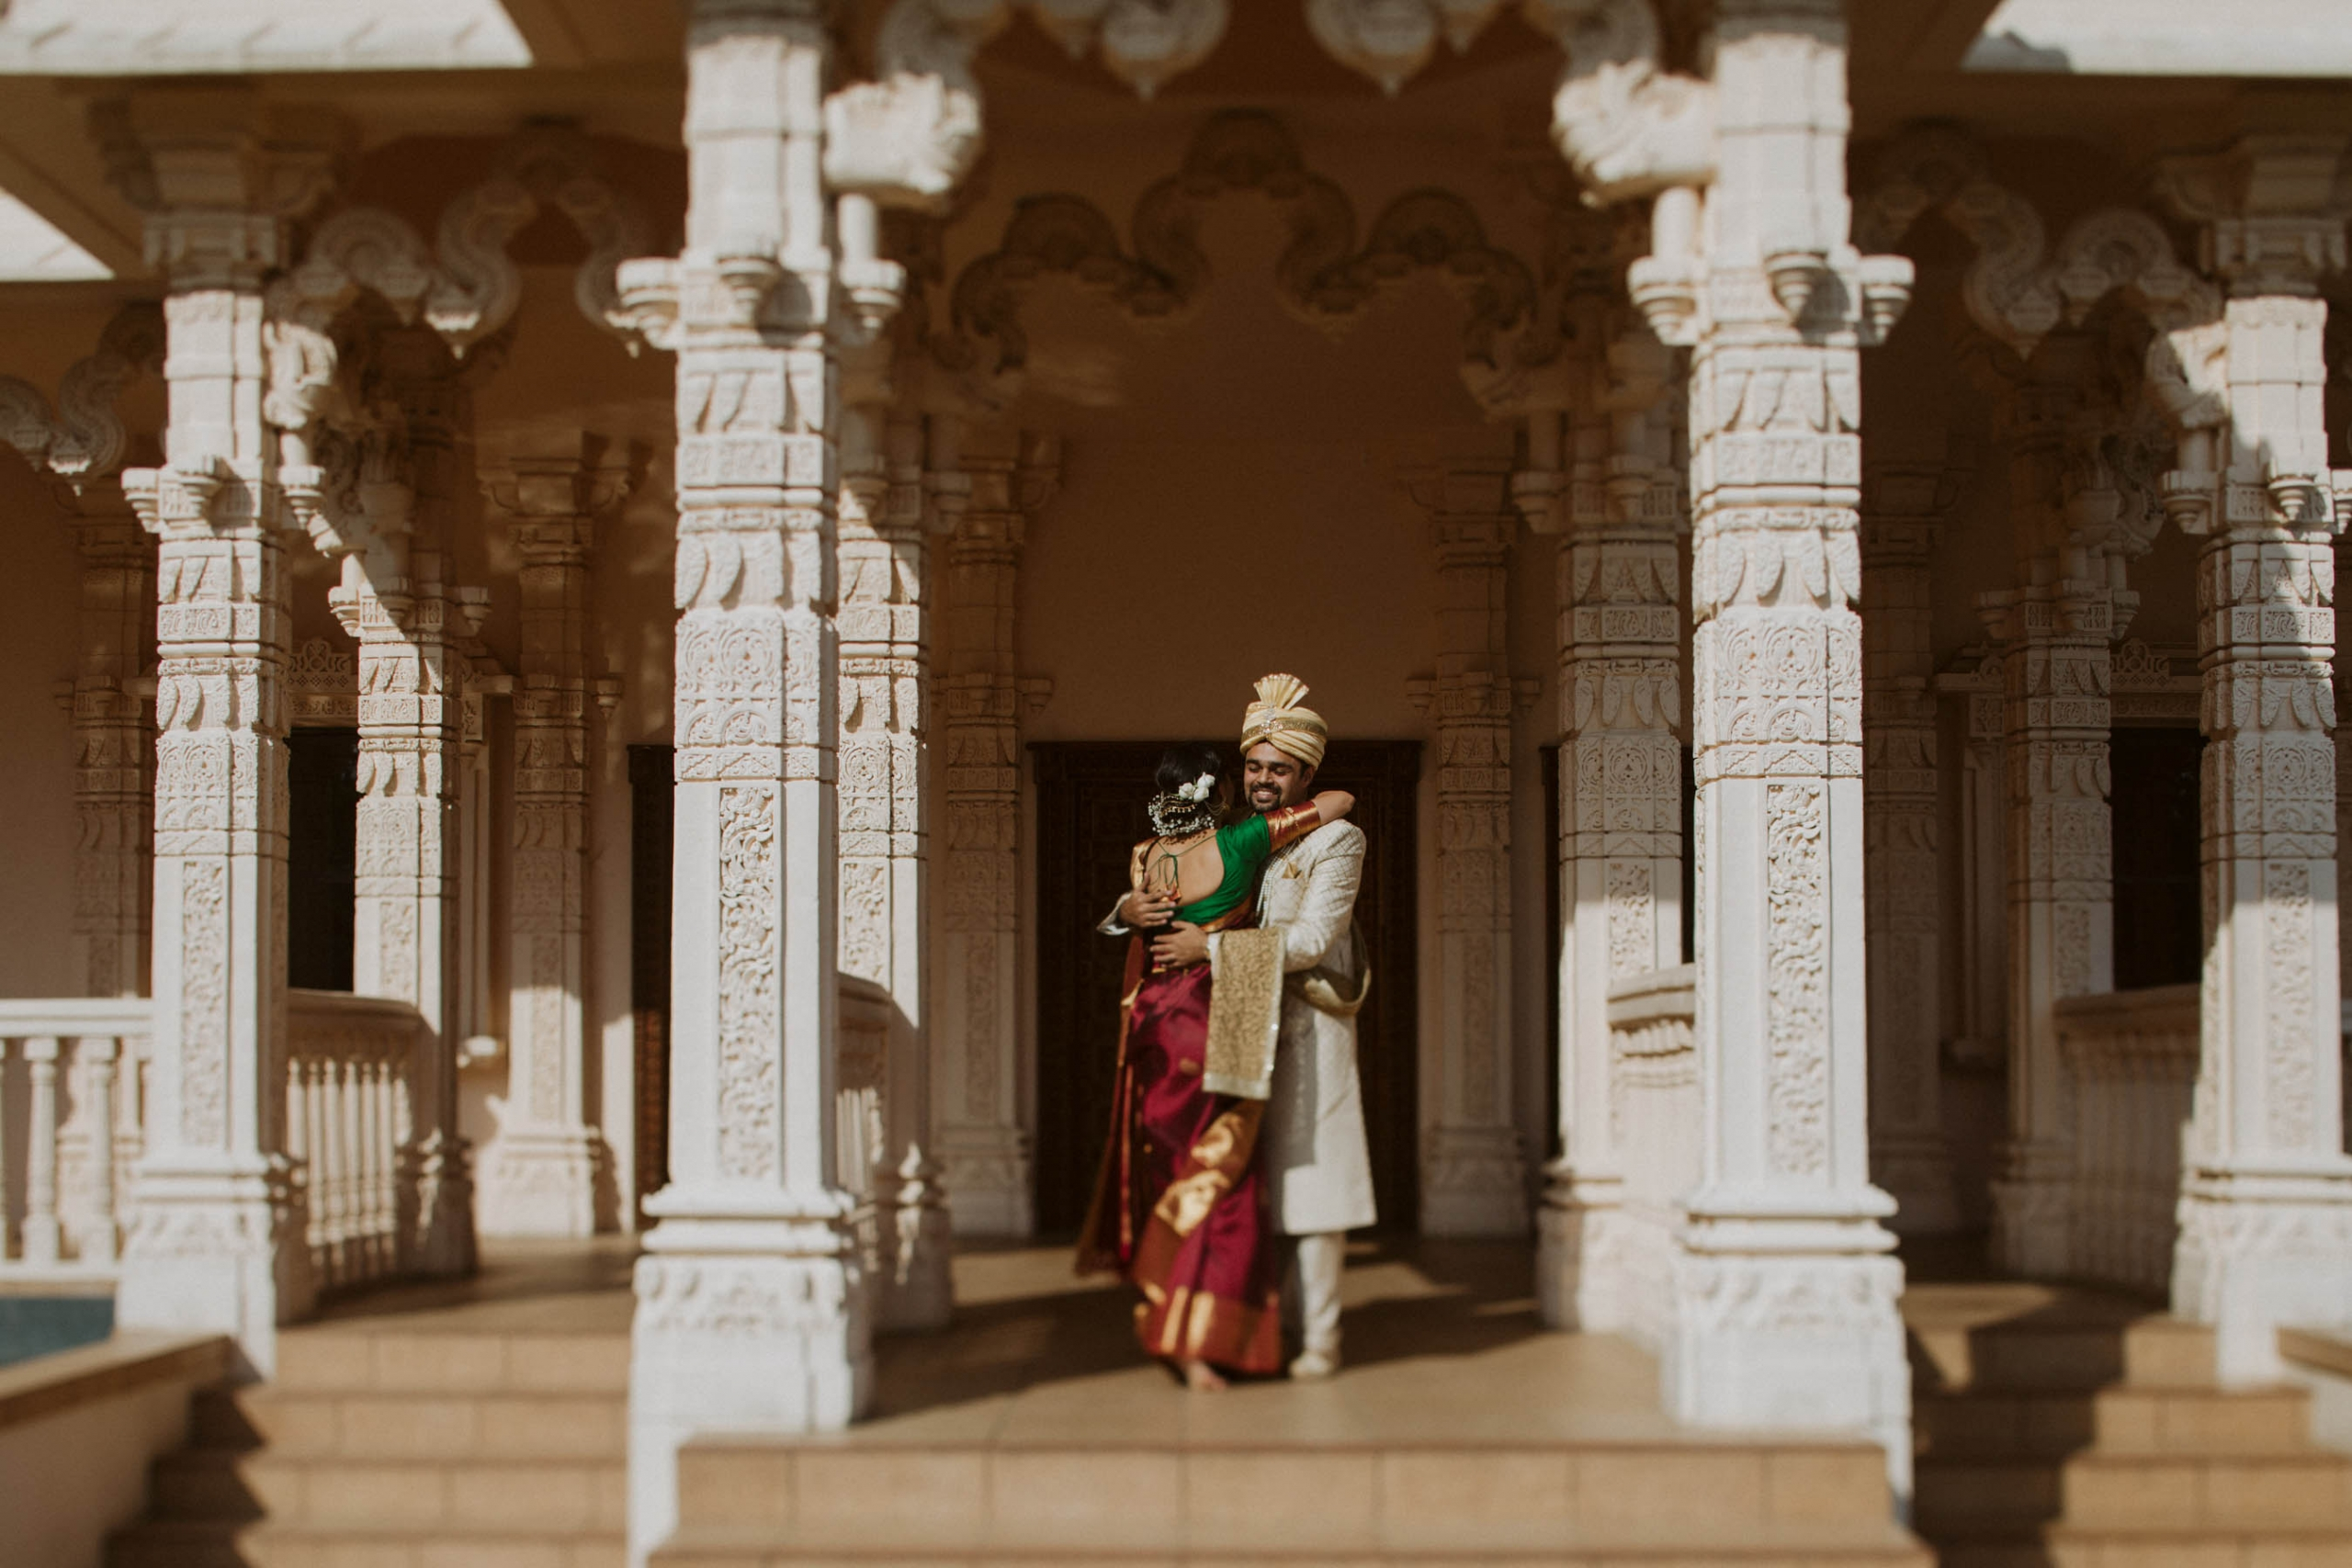 Shilpa and Shakti's stunning traditional south Indian wedding took place in Auckland, New Zealand at the BAPS Swaminarayan Mandir